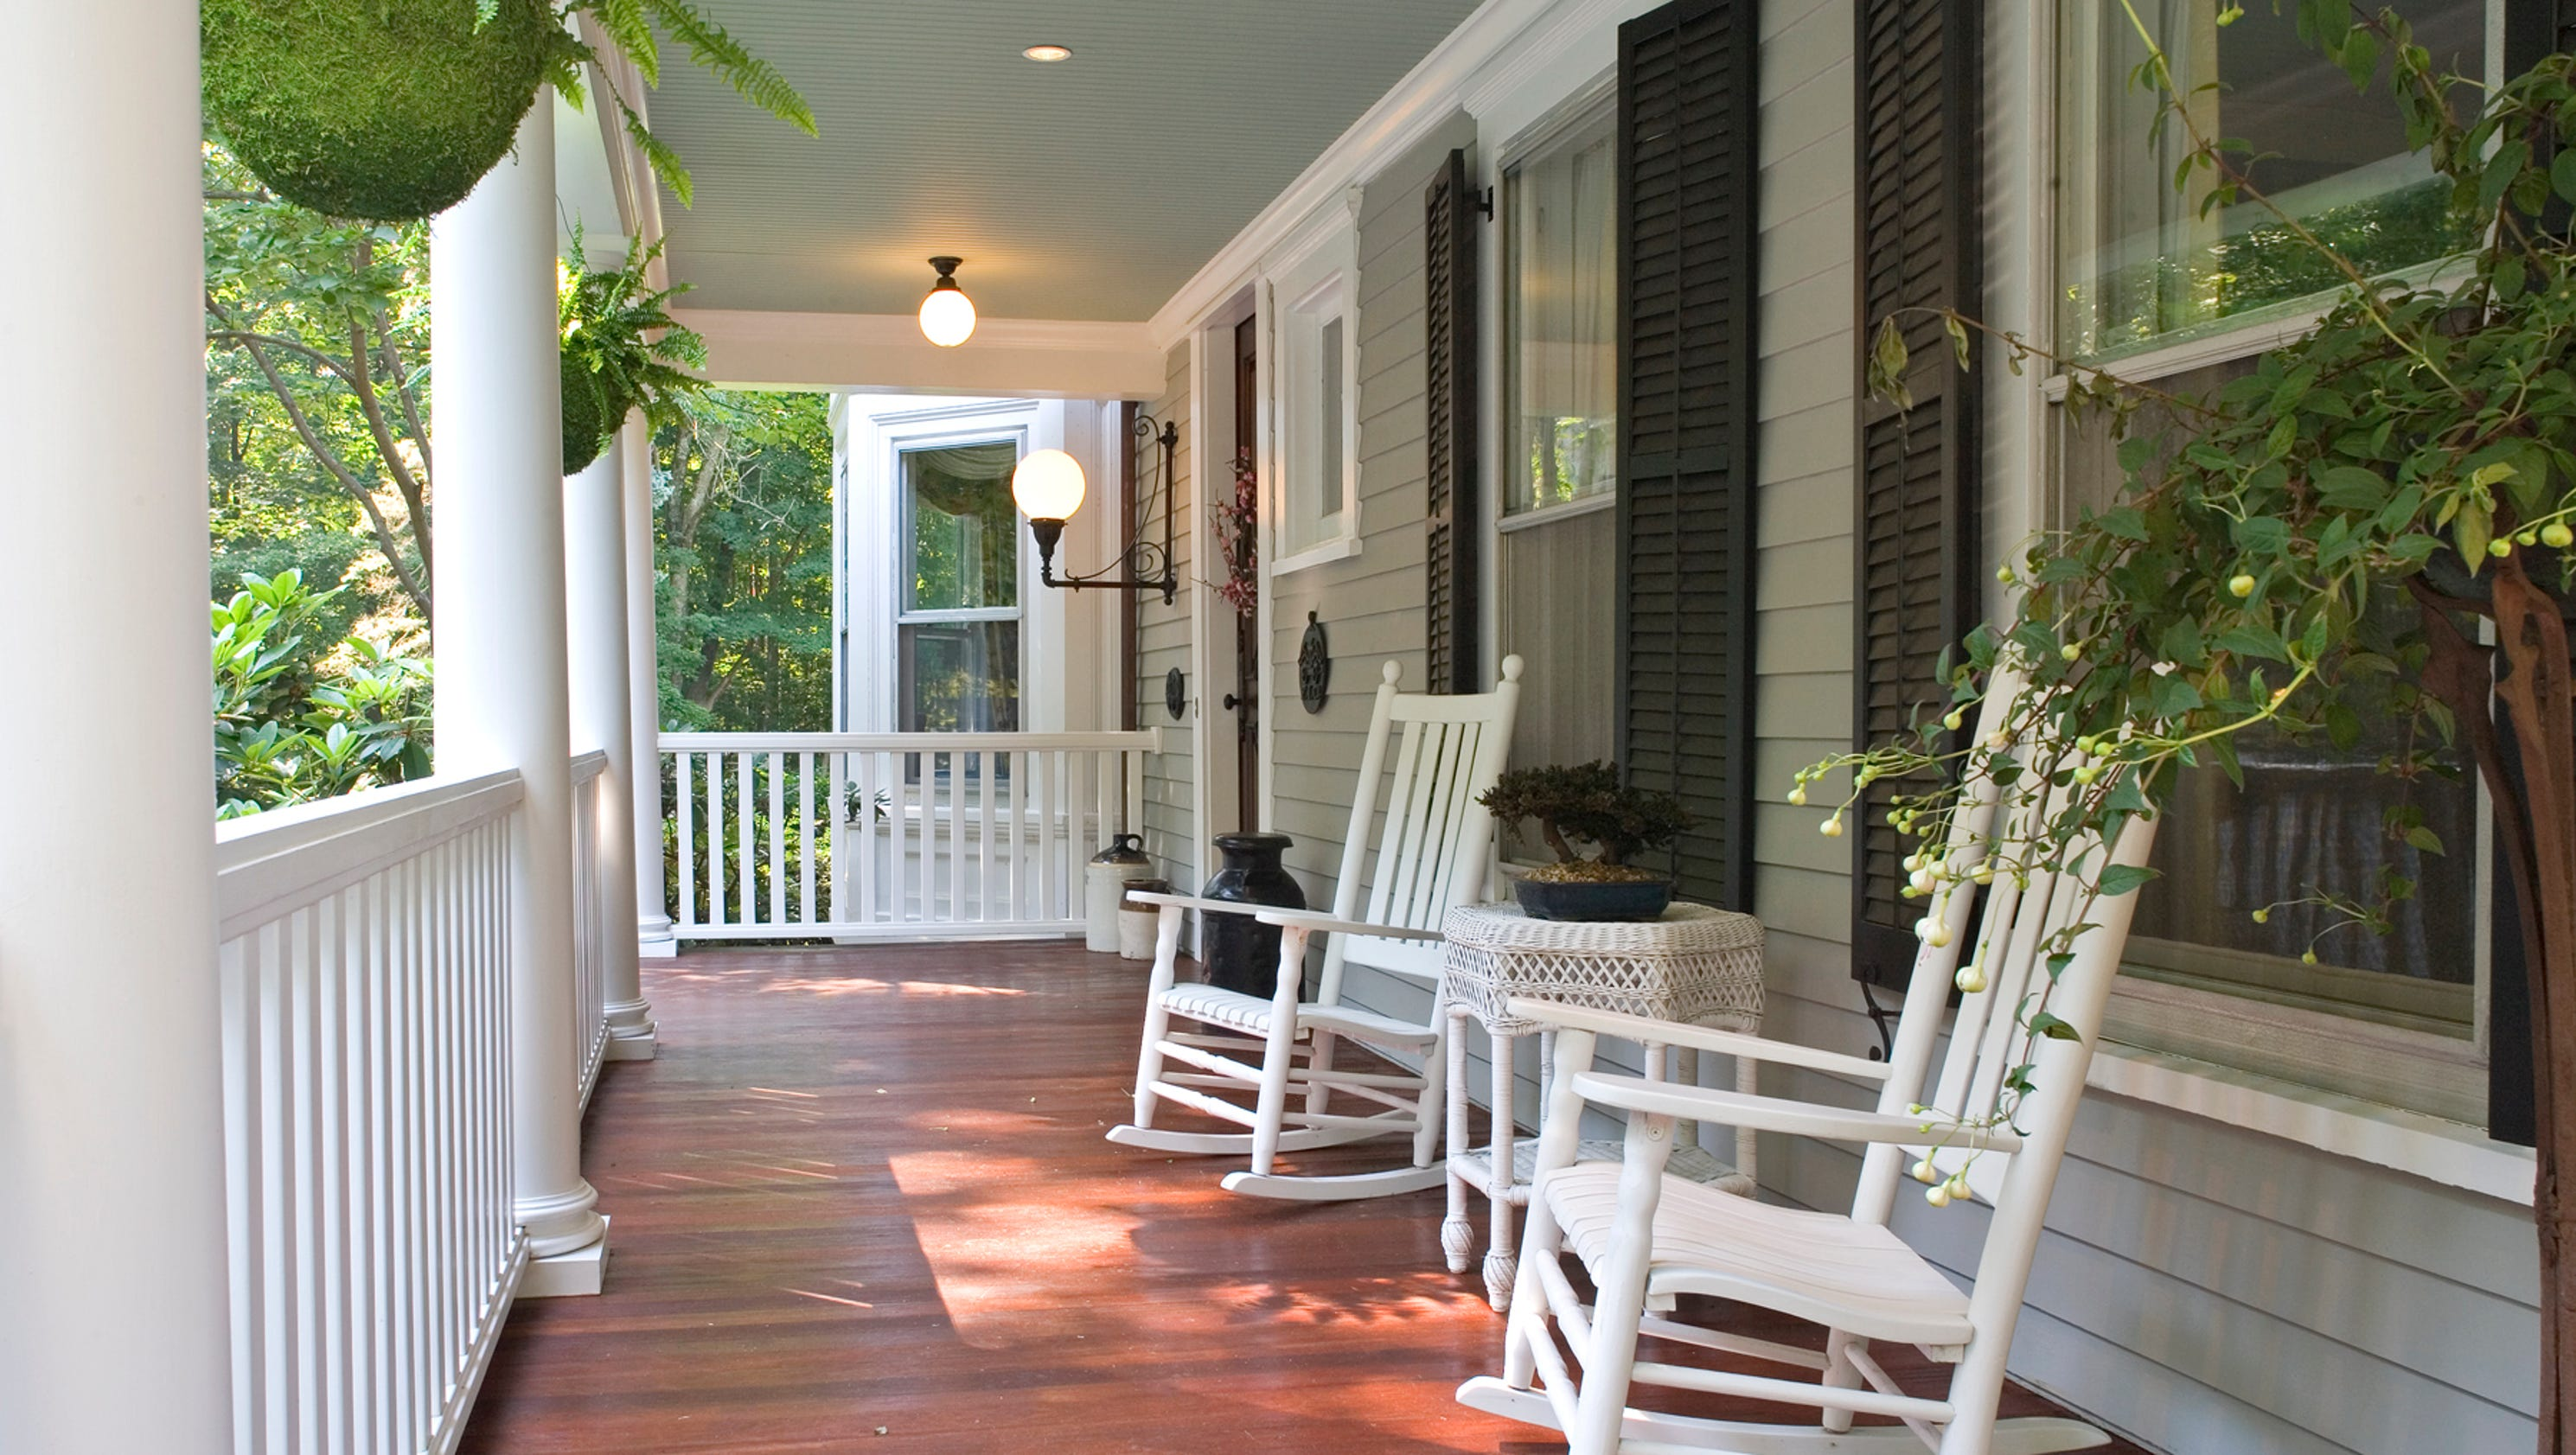 Mississippi 39 s conference on the front porch will study and for Porches login